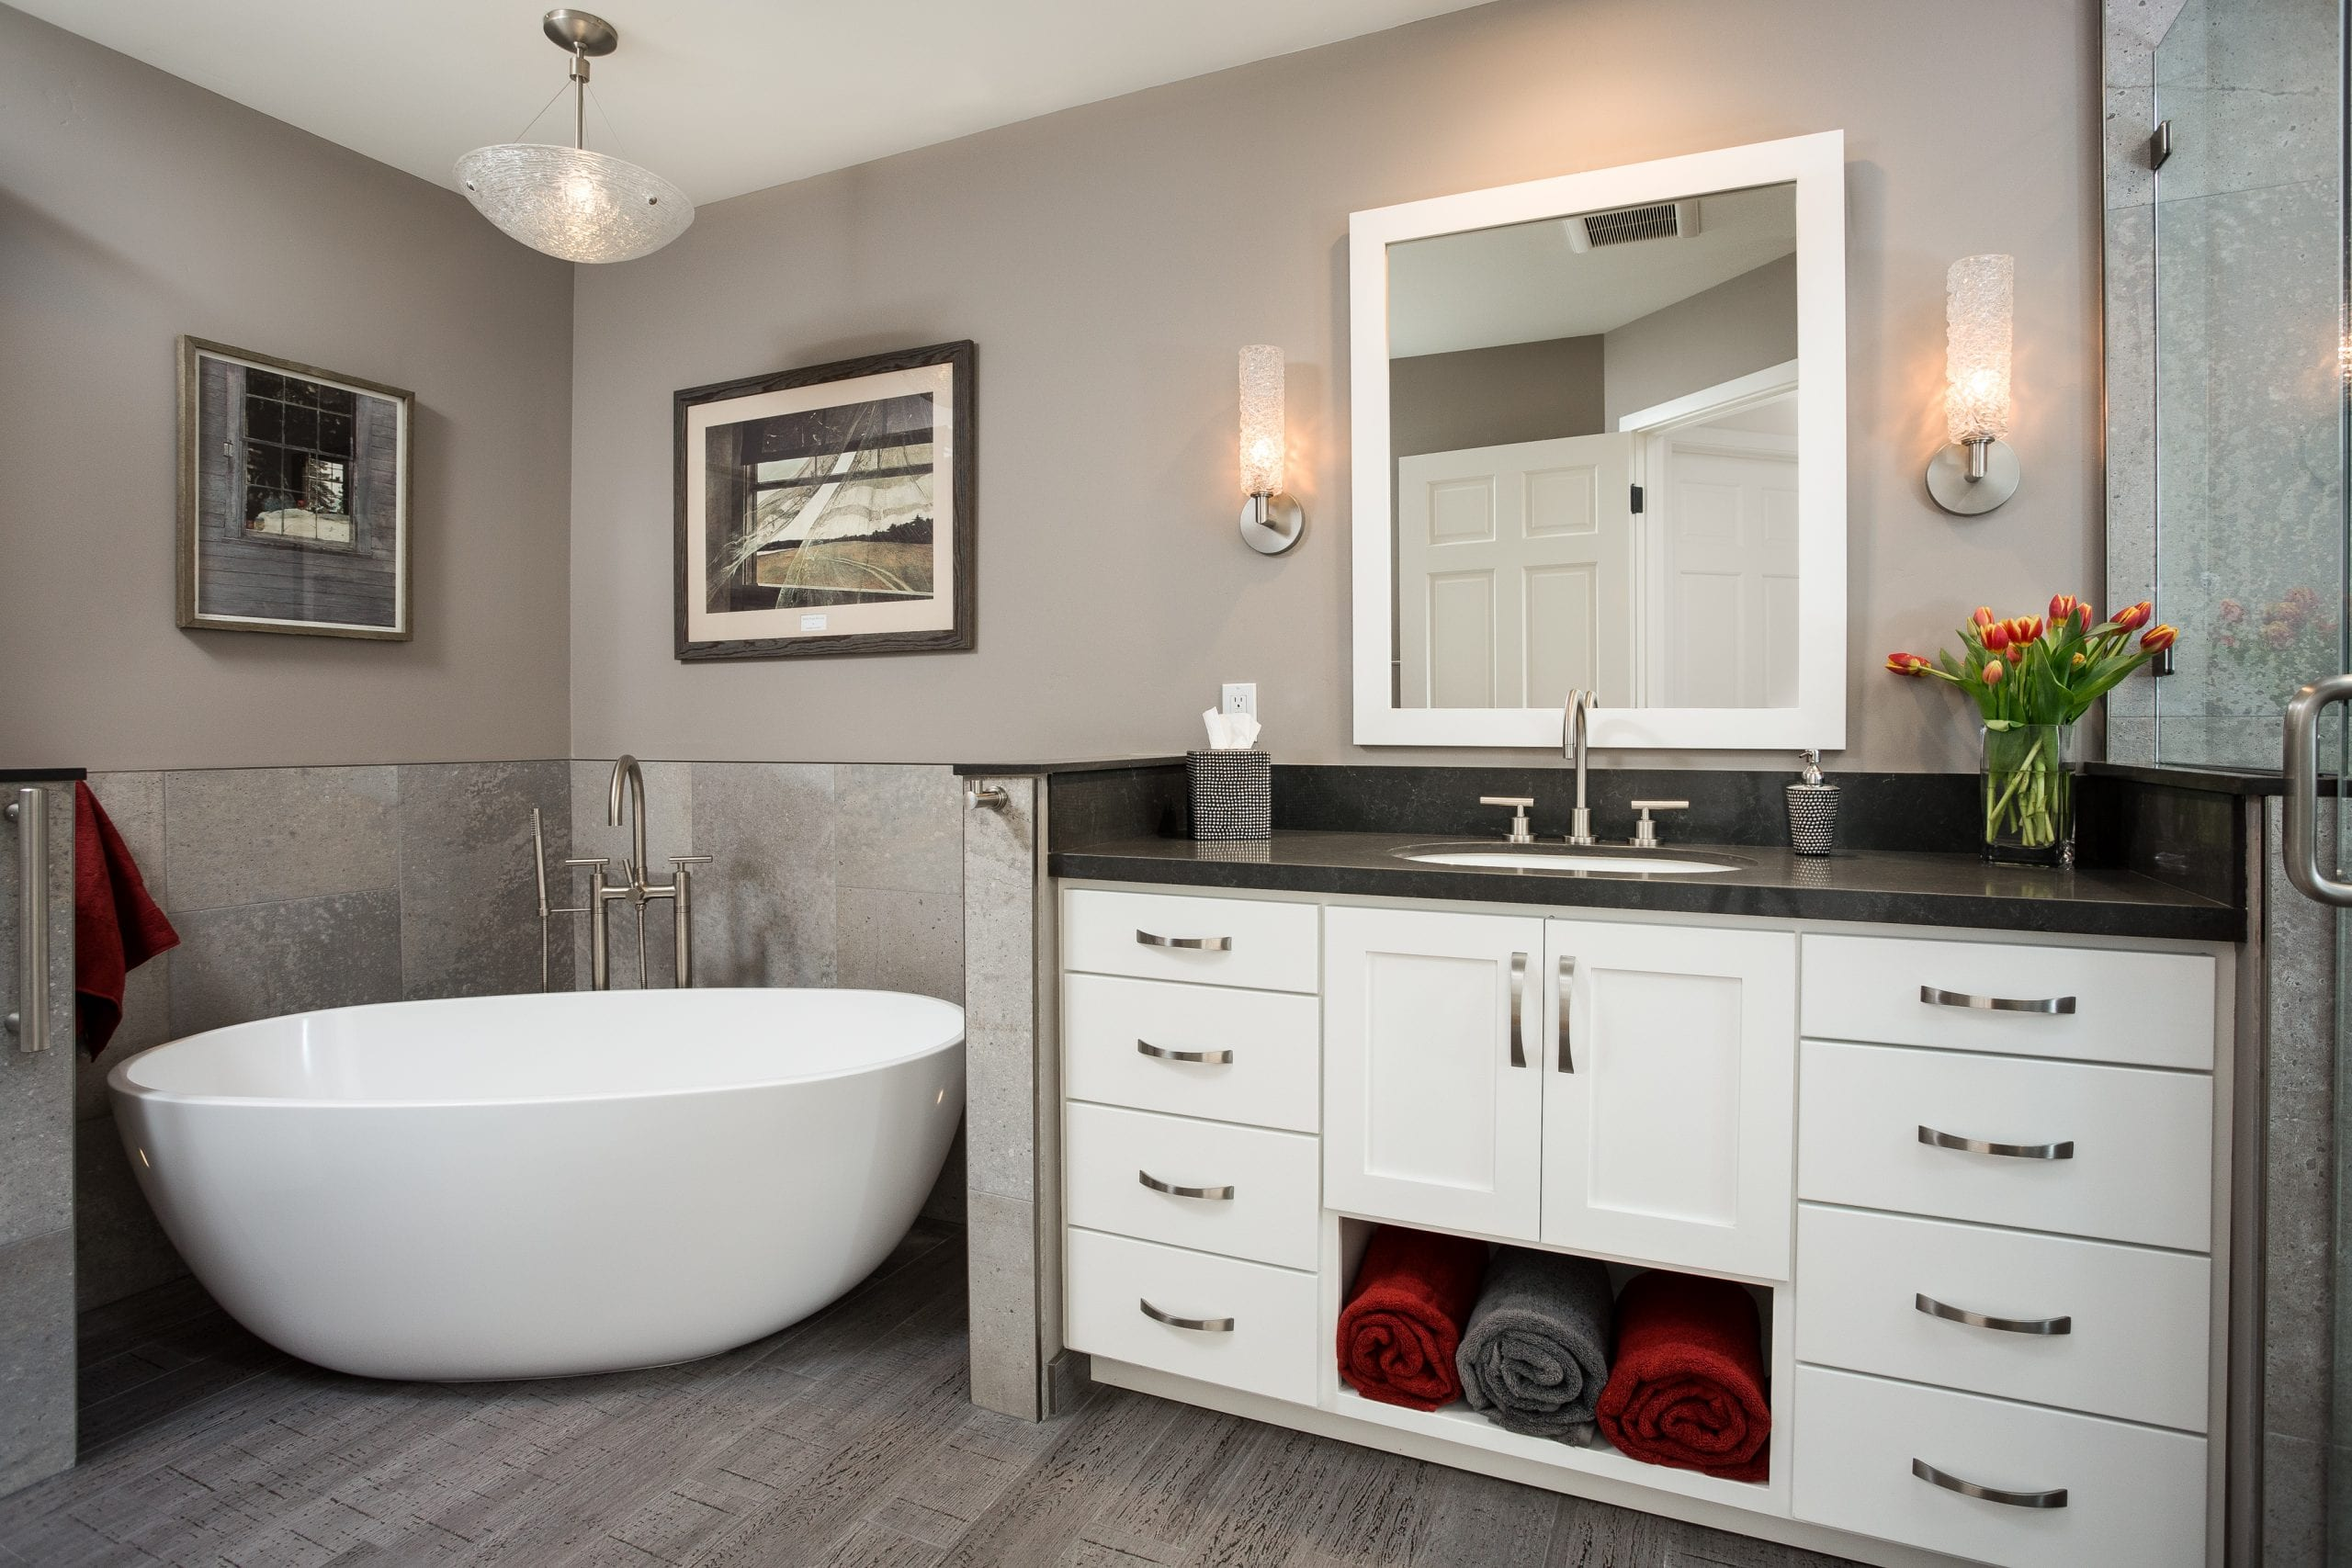 Ceramic tub next to counter with white wood cabinets